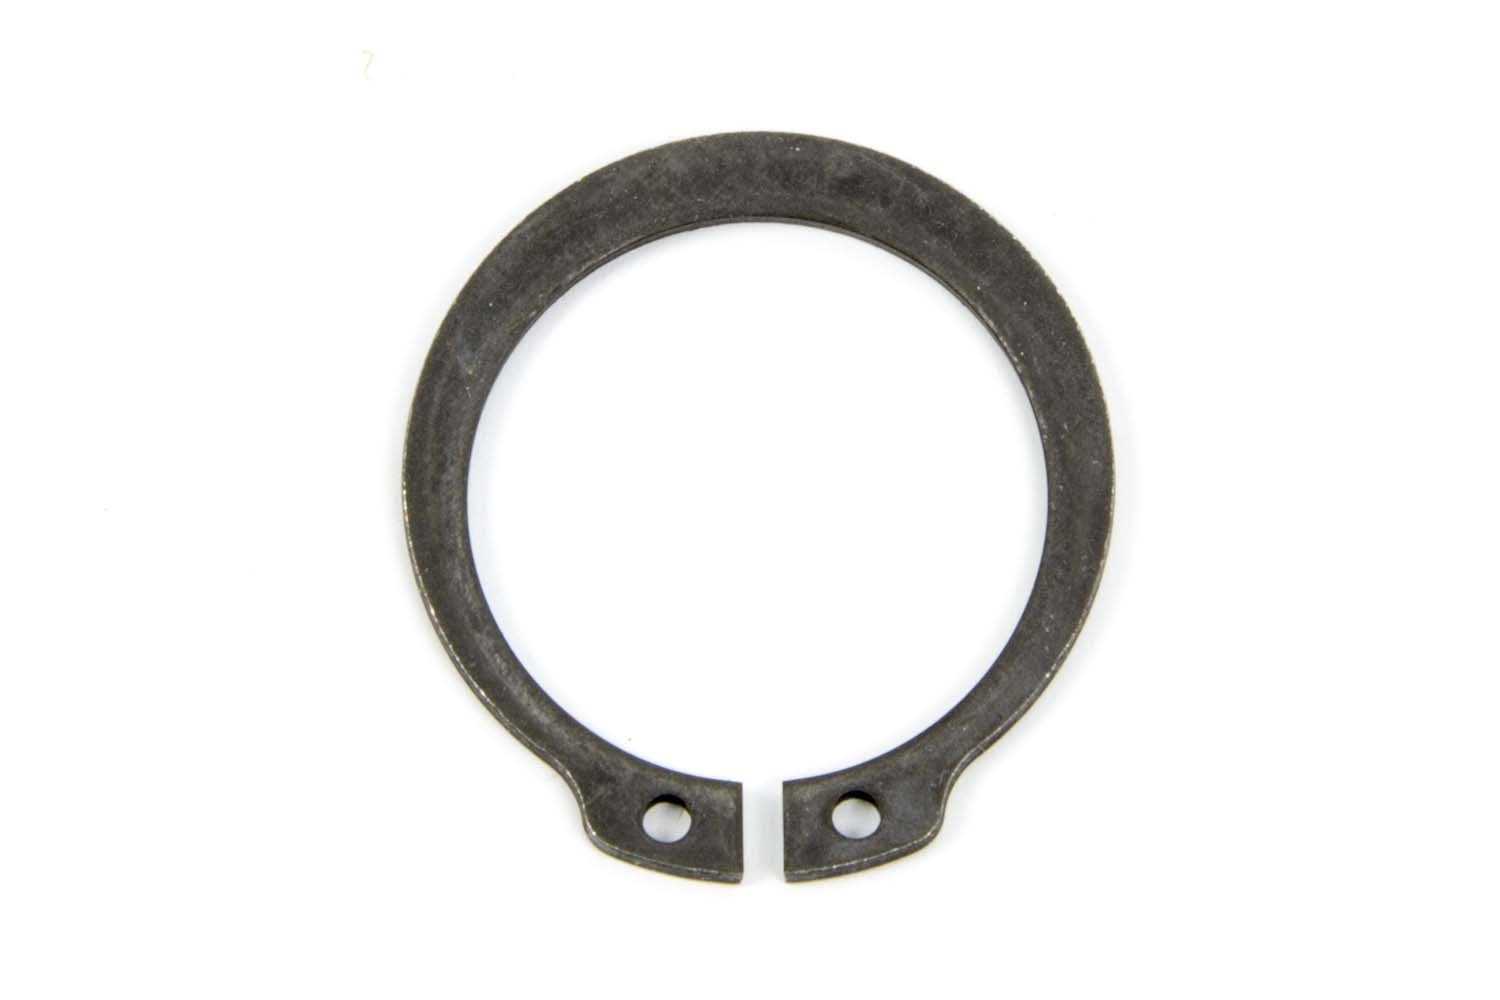 Winters 7610 Snap Ring, Steel, Natural, Internal Coupler, Lower Shaft Bearing, Winters Quick Change, Each